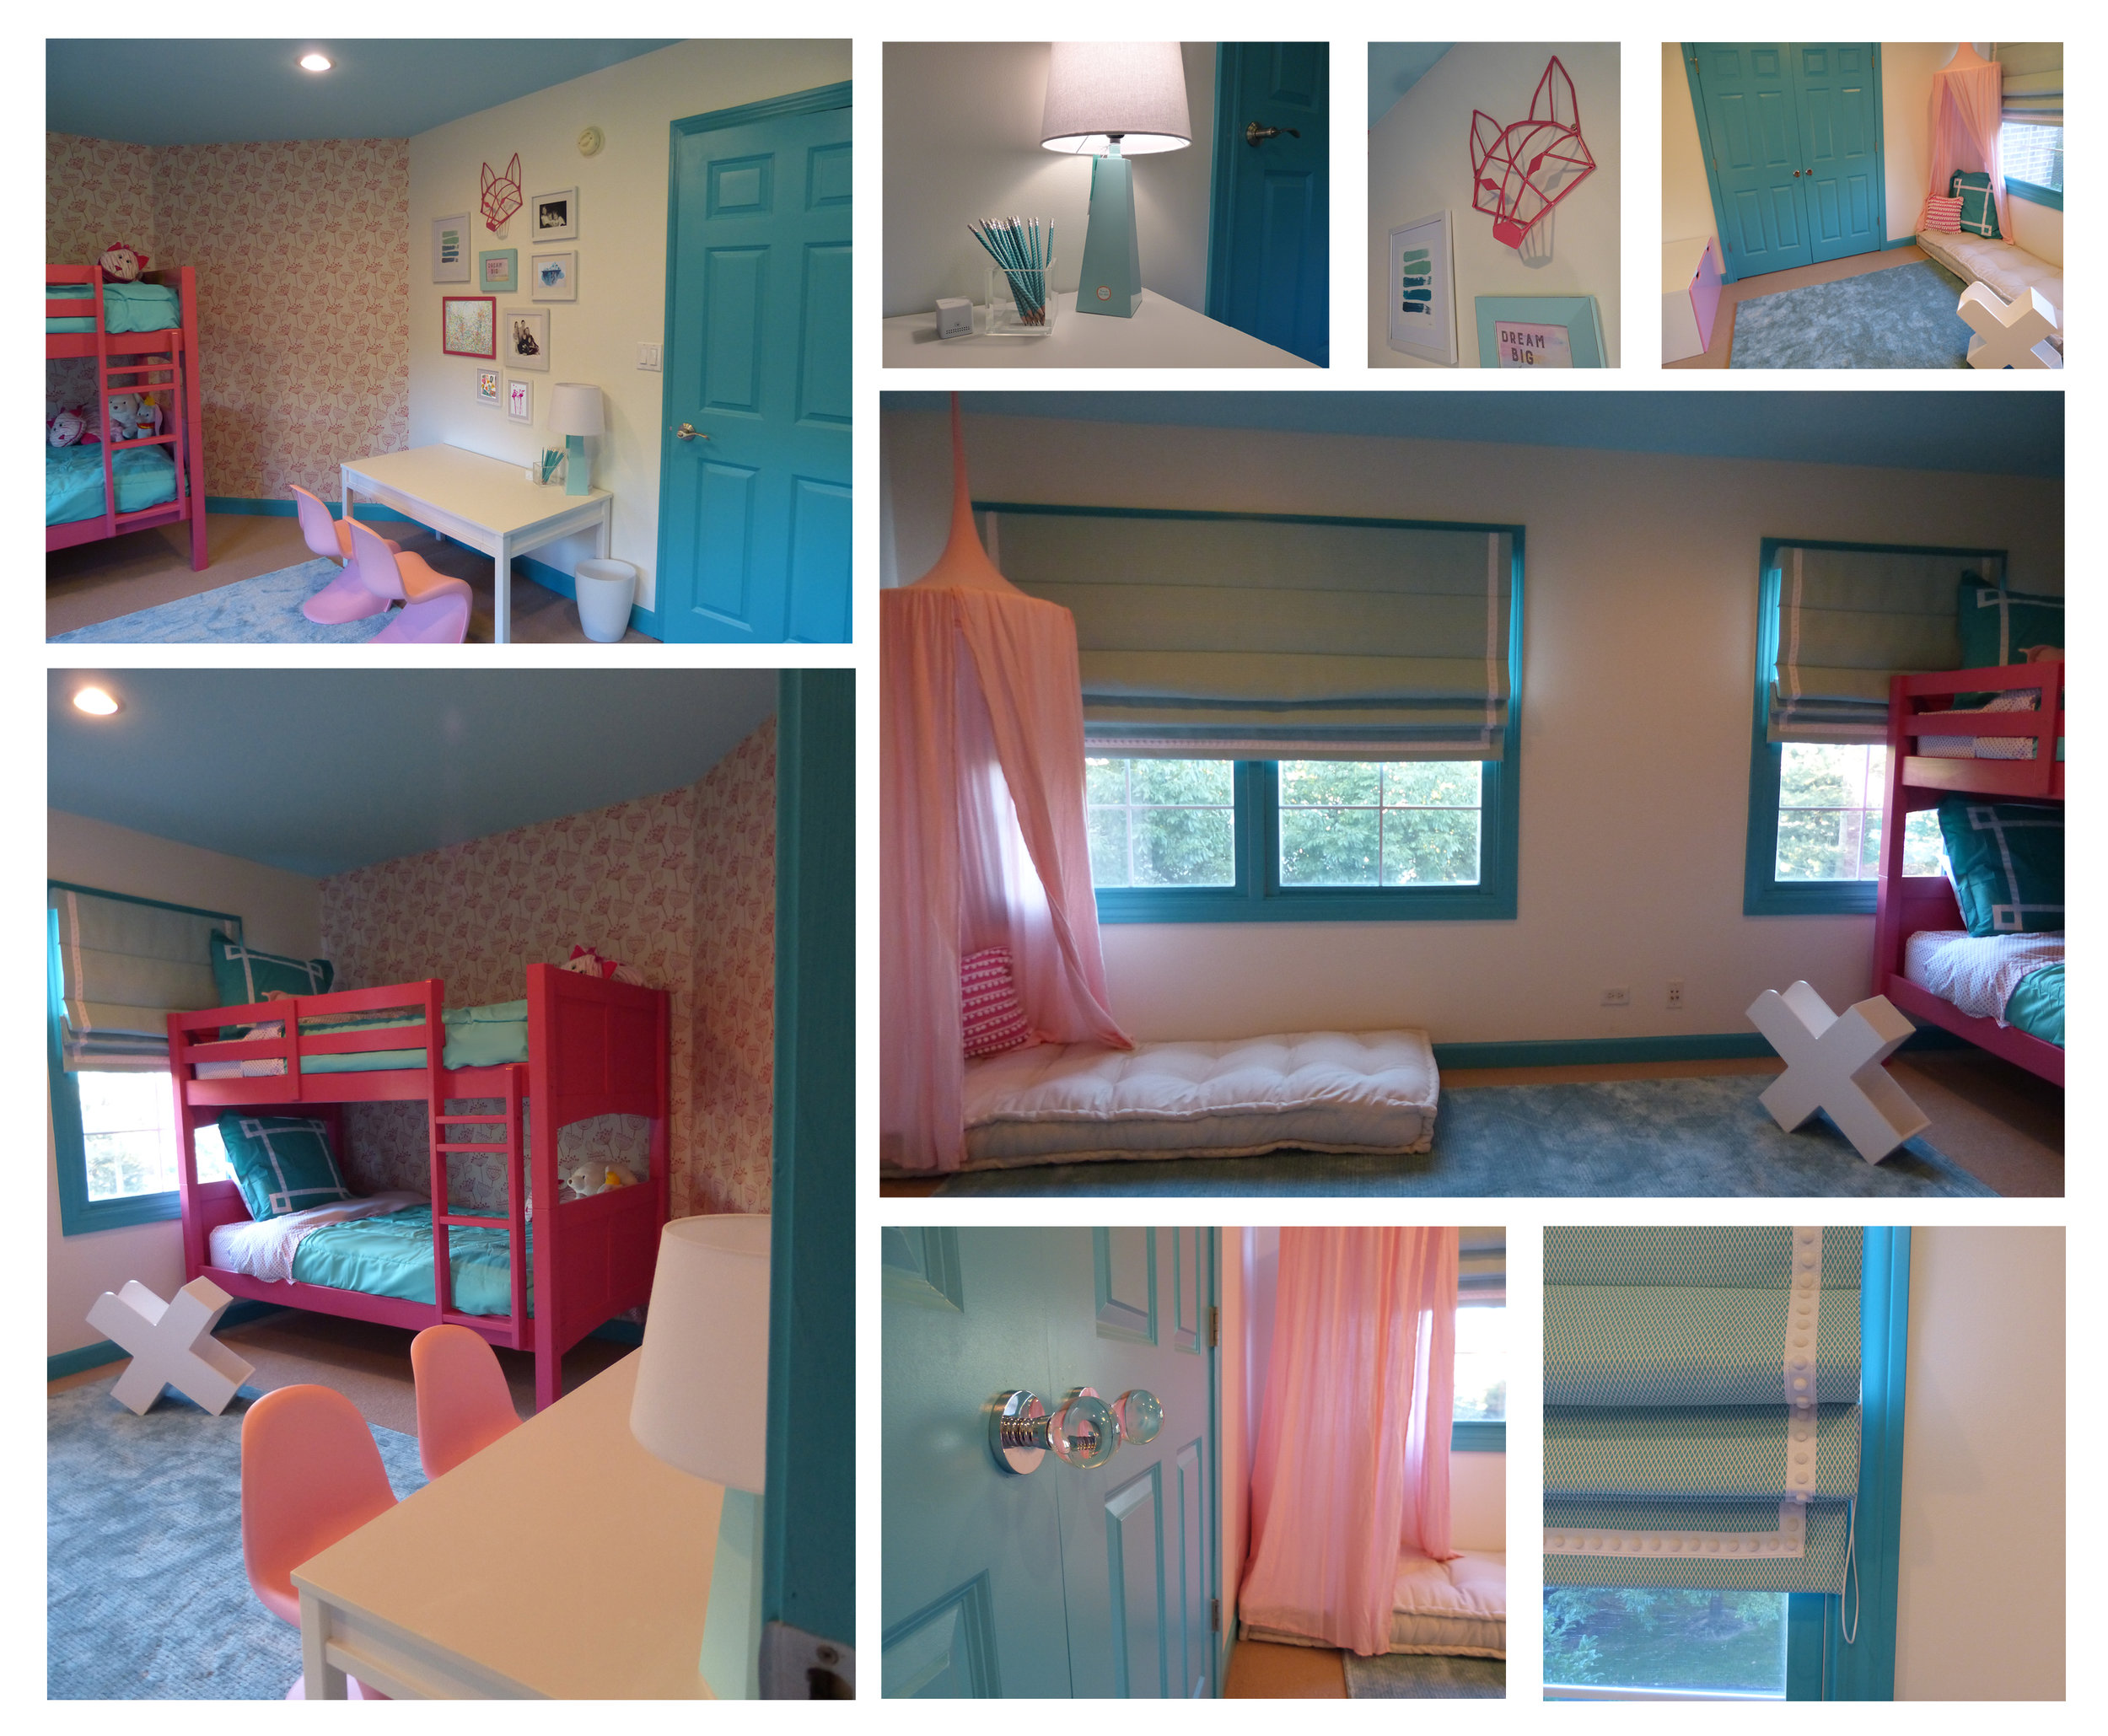 And after! All the gorgeous details coming together! We LOVE how this color combo turned out.